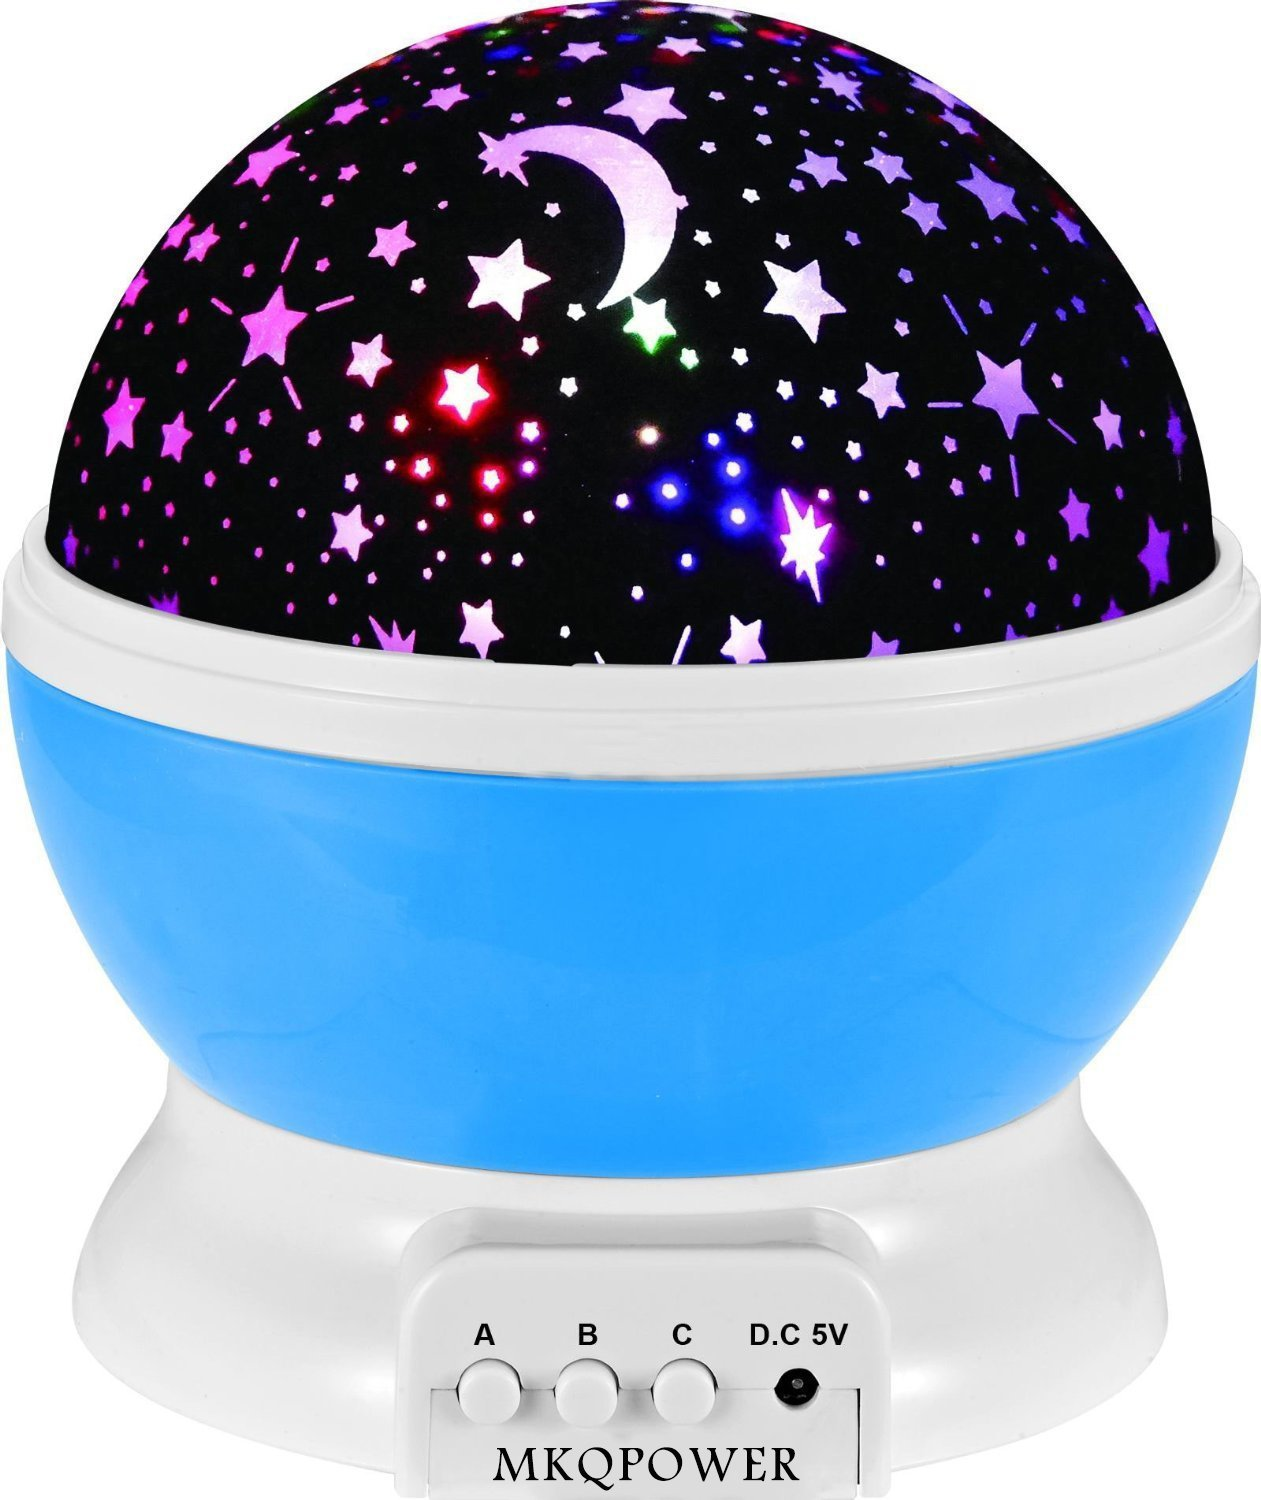 DSAATN Moon Star lighting Lamp, 4 LED beads Rotating Romantic Lamp Relaxing MKQPOWER MOXKD-BB